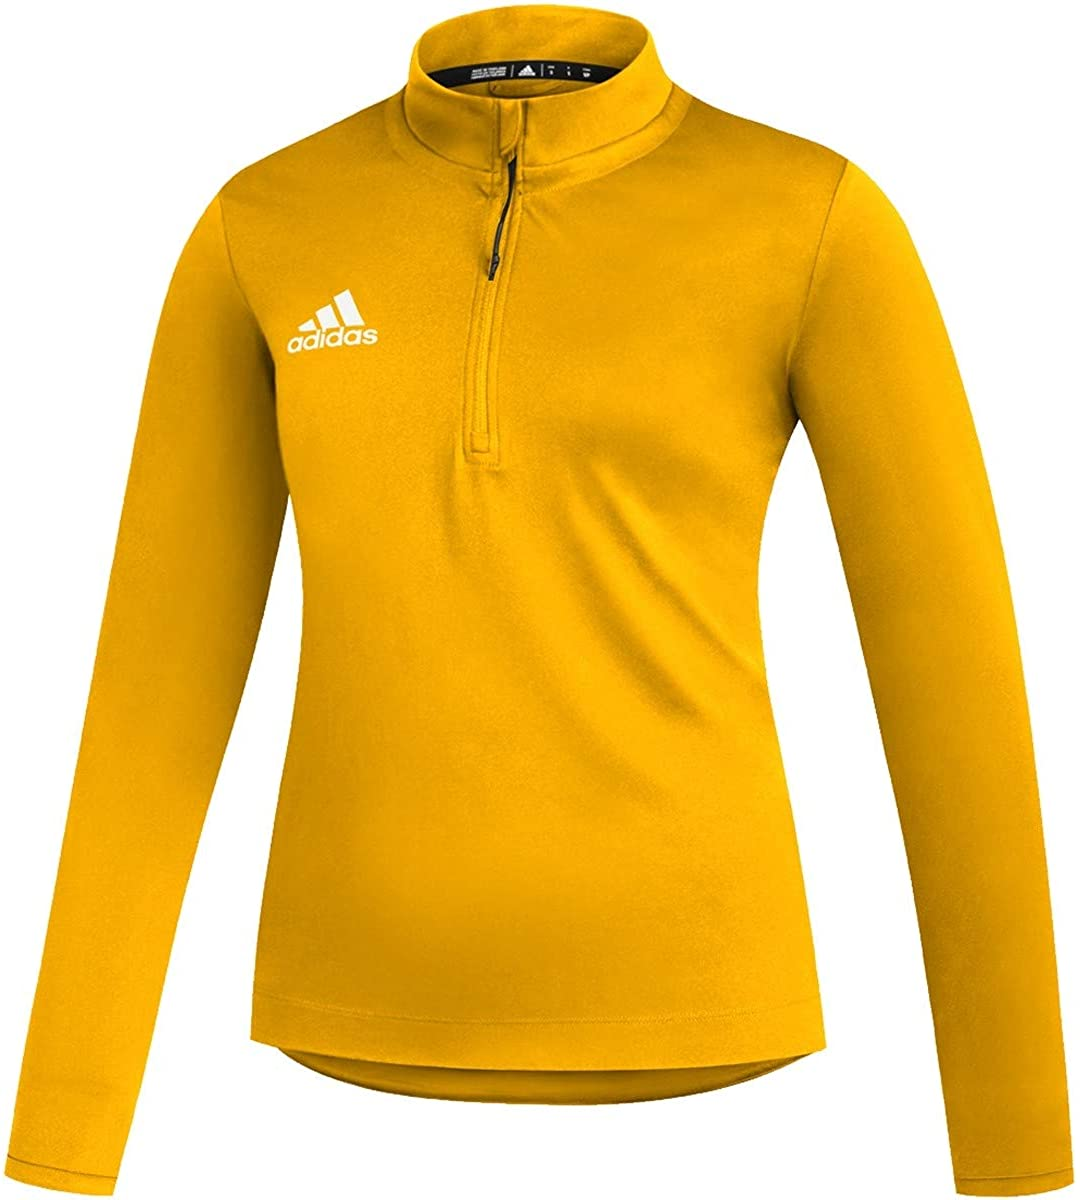 adidas Under The Lights Long Sleeve Top - Women's Multi-Sport